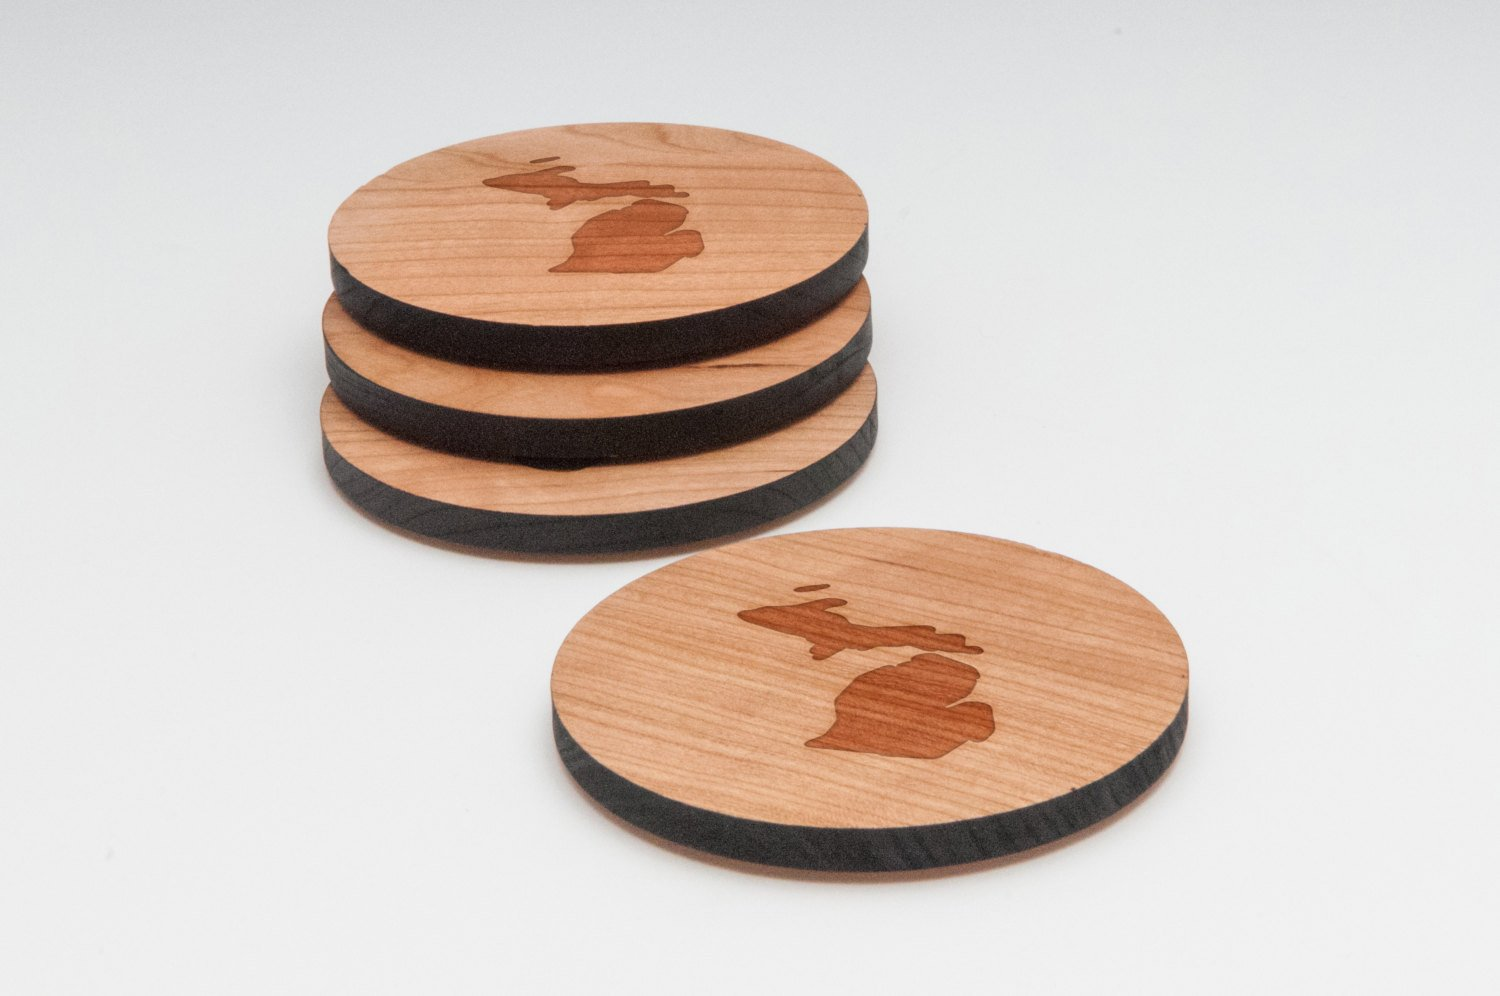 Made In The USA WOODEN ACCESSORIES CO Wooden Coaster Set With Laser Engraved Michigan Design Cherry Wood Round Wooden Coasters Set of 4 Laser Cut Coasters